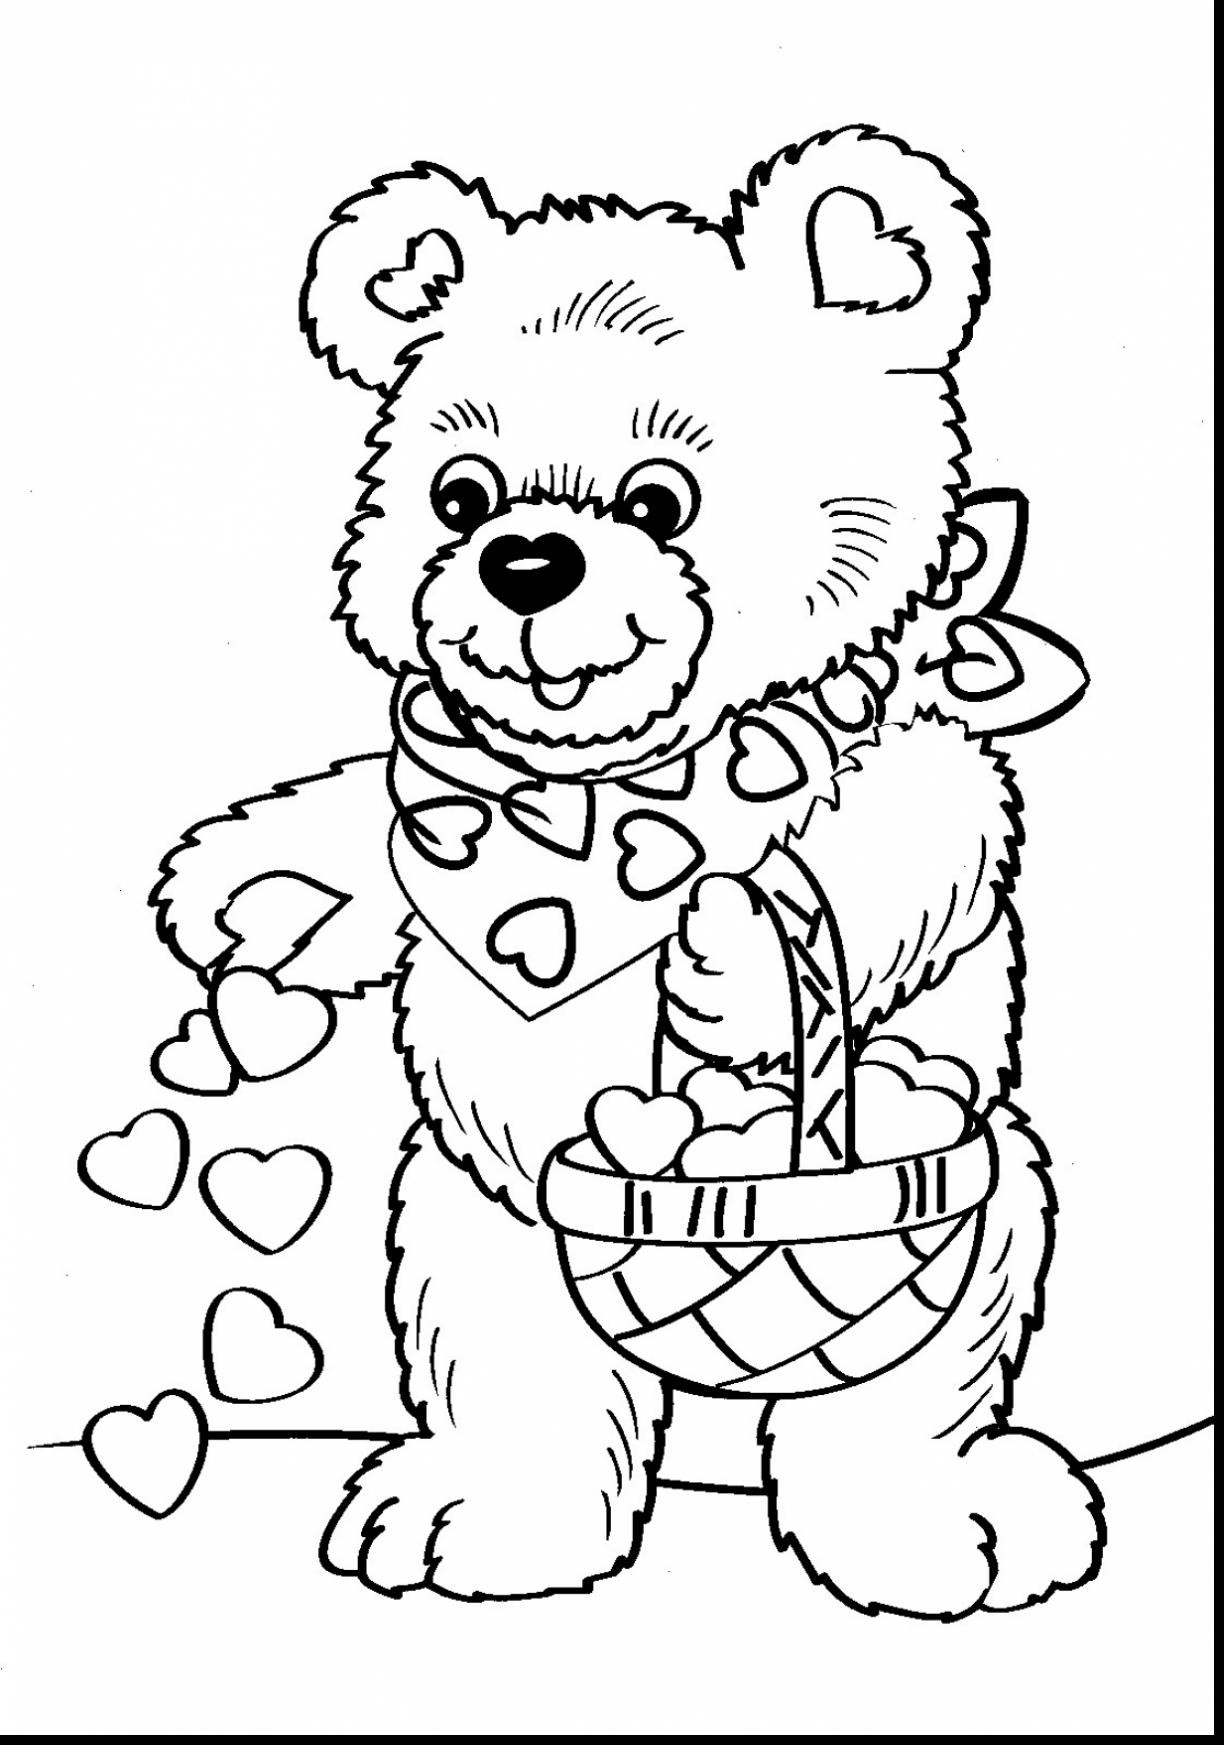 image relating to Valentine Day Coloring Pages Printable identified as Valentines Working day Coloring Internet pages Printable Hi there Kitty